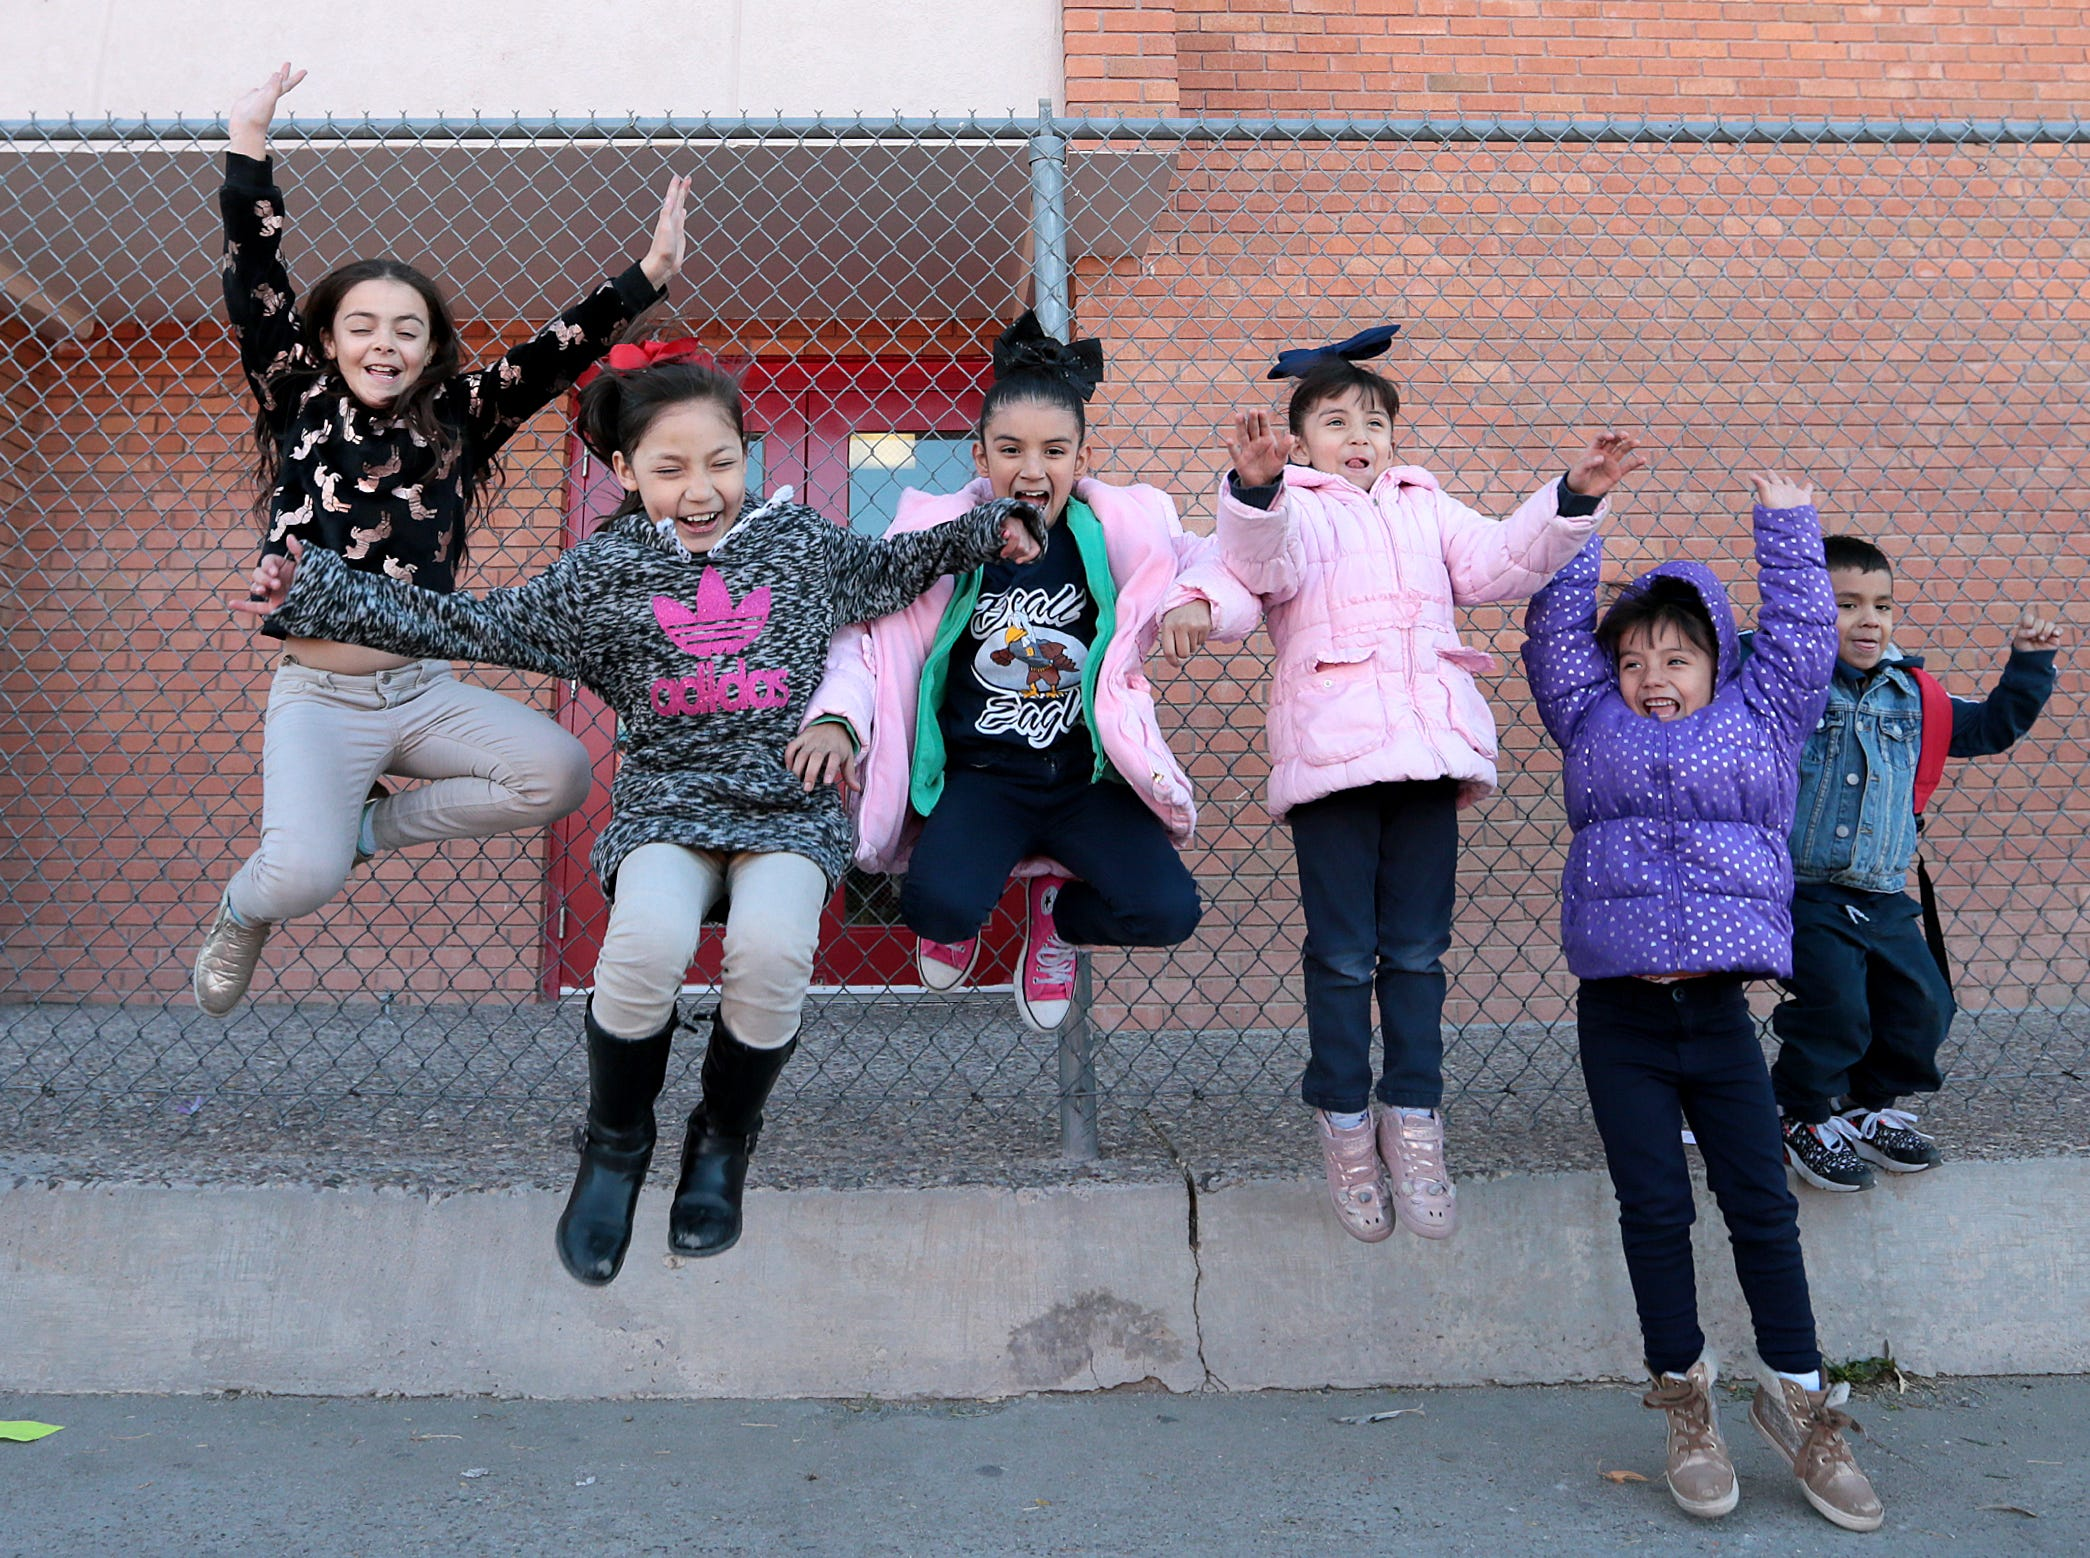 Beall Elementary School students play after school Wednesday. The EPISD Board voted Tuesday to close the school and three others.